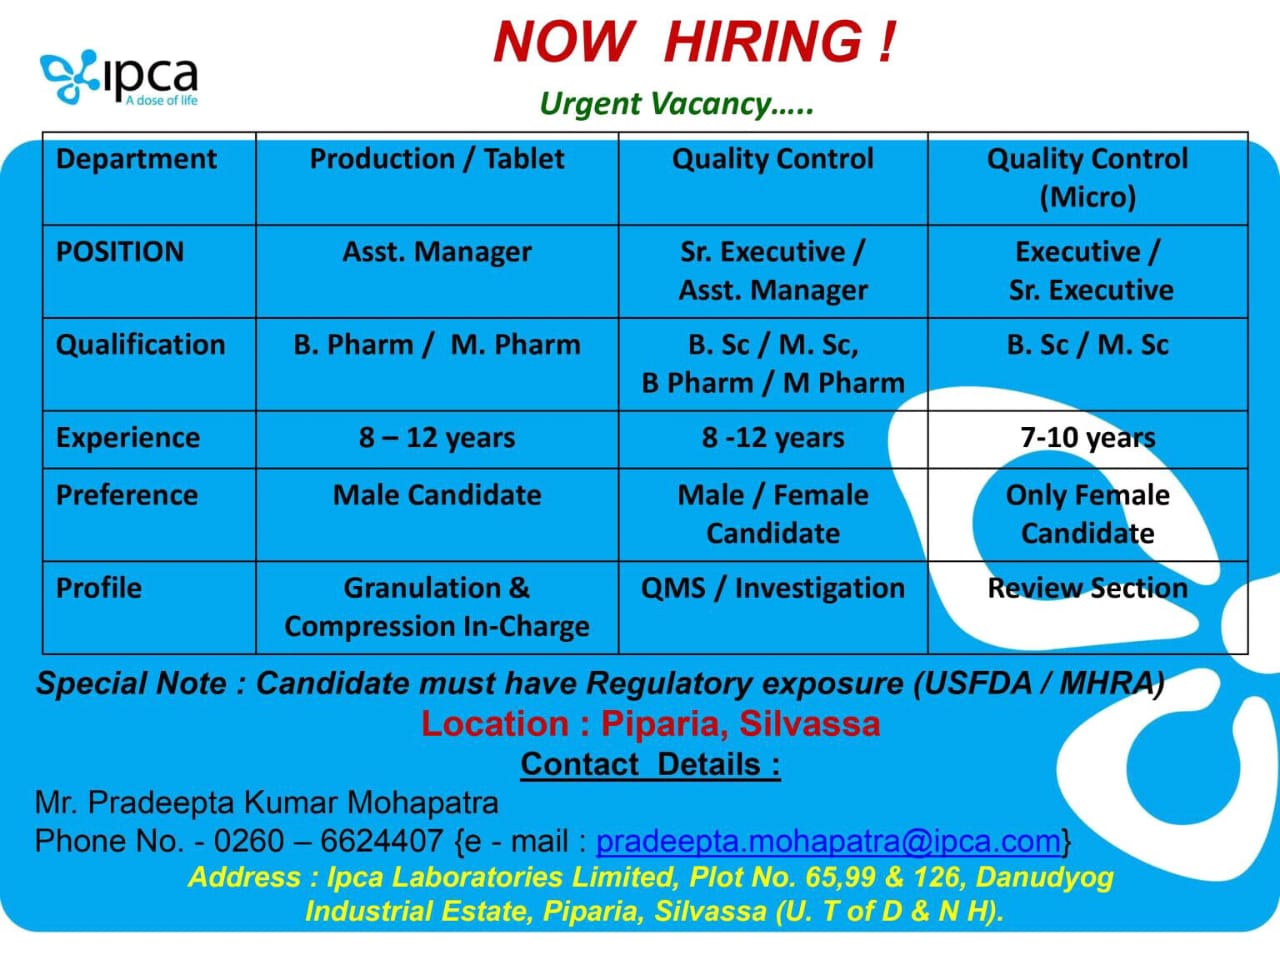 IPCA Laboratories - Job Opening for Production, Quality Control, Quality Control ( Micro ) | Apply Now